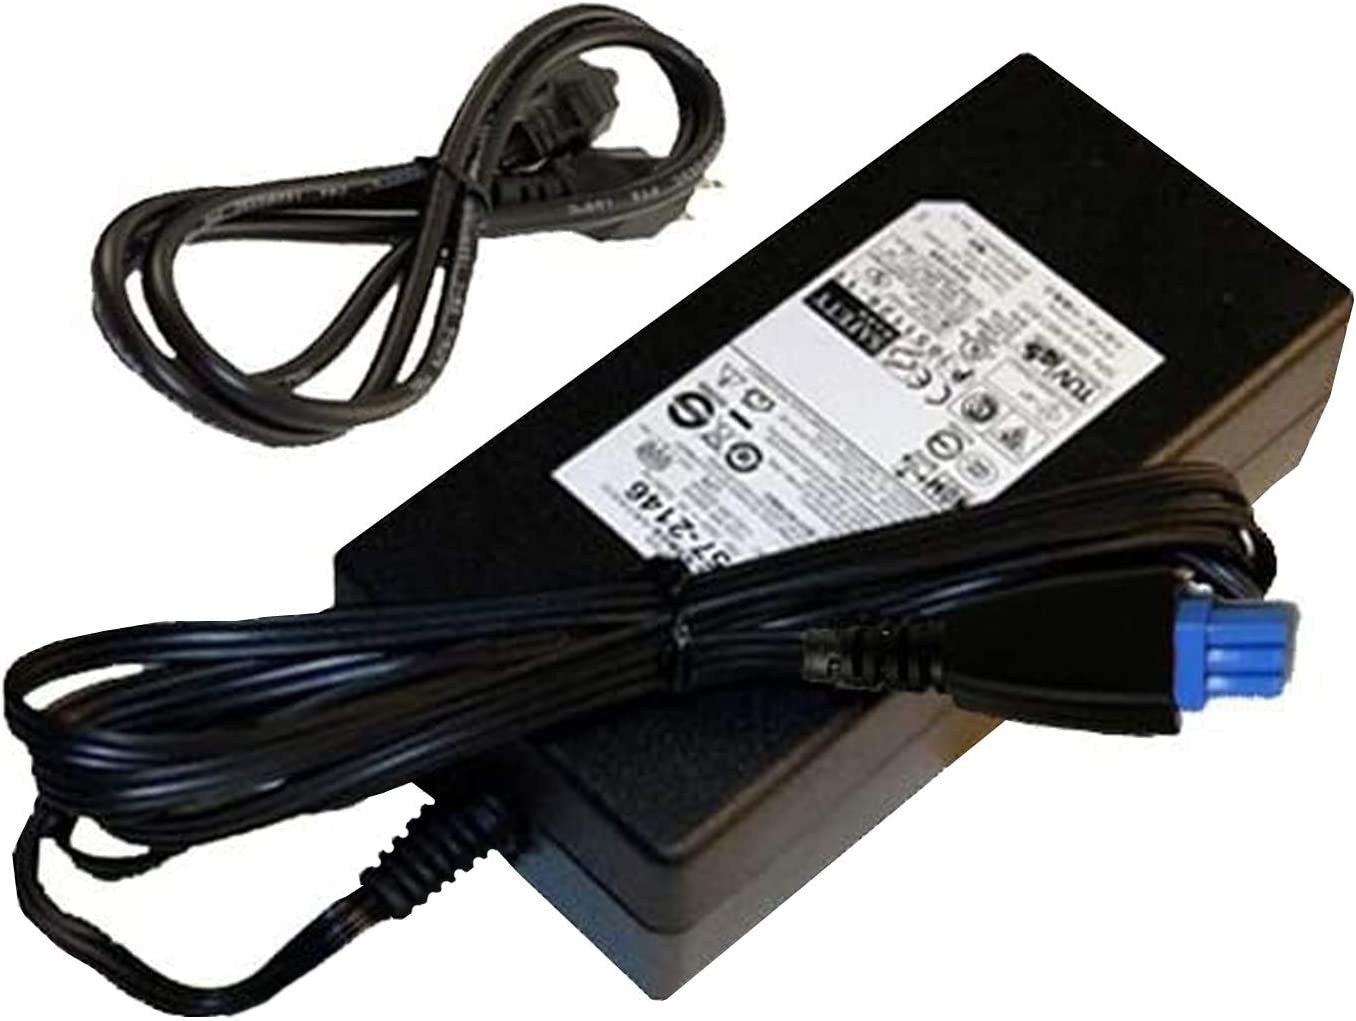 UpBright New Global 32V AC/DC Adapter Compatible with HP Officejet Pro L7555 L7580 L7690 OfficejetPro 8600a Plus (n911g) All-in-One Printer 32VDC Power Supply Cord Cable PS Battery Charger Mains PSU